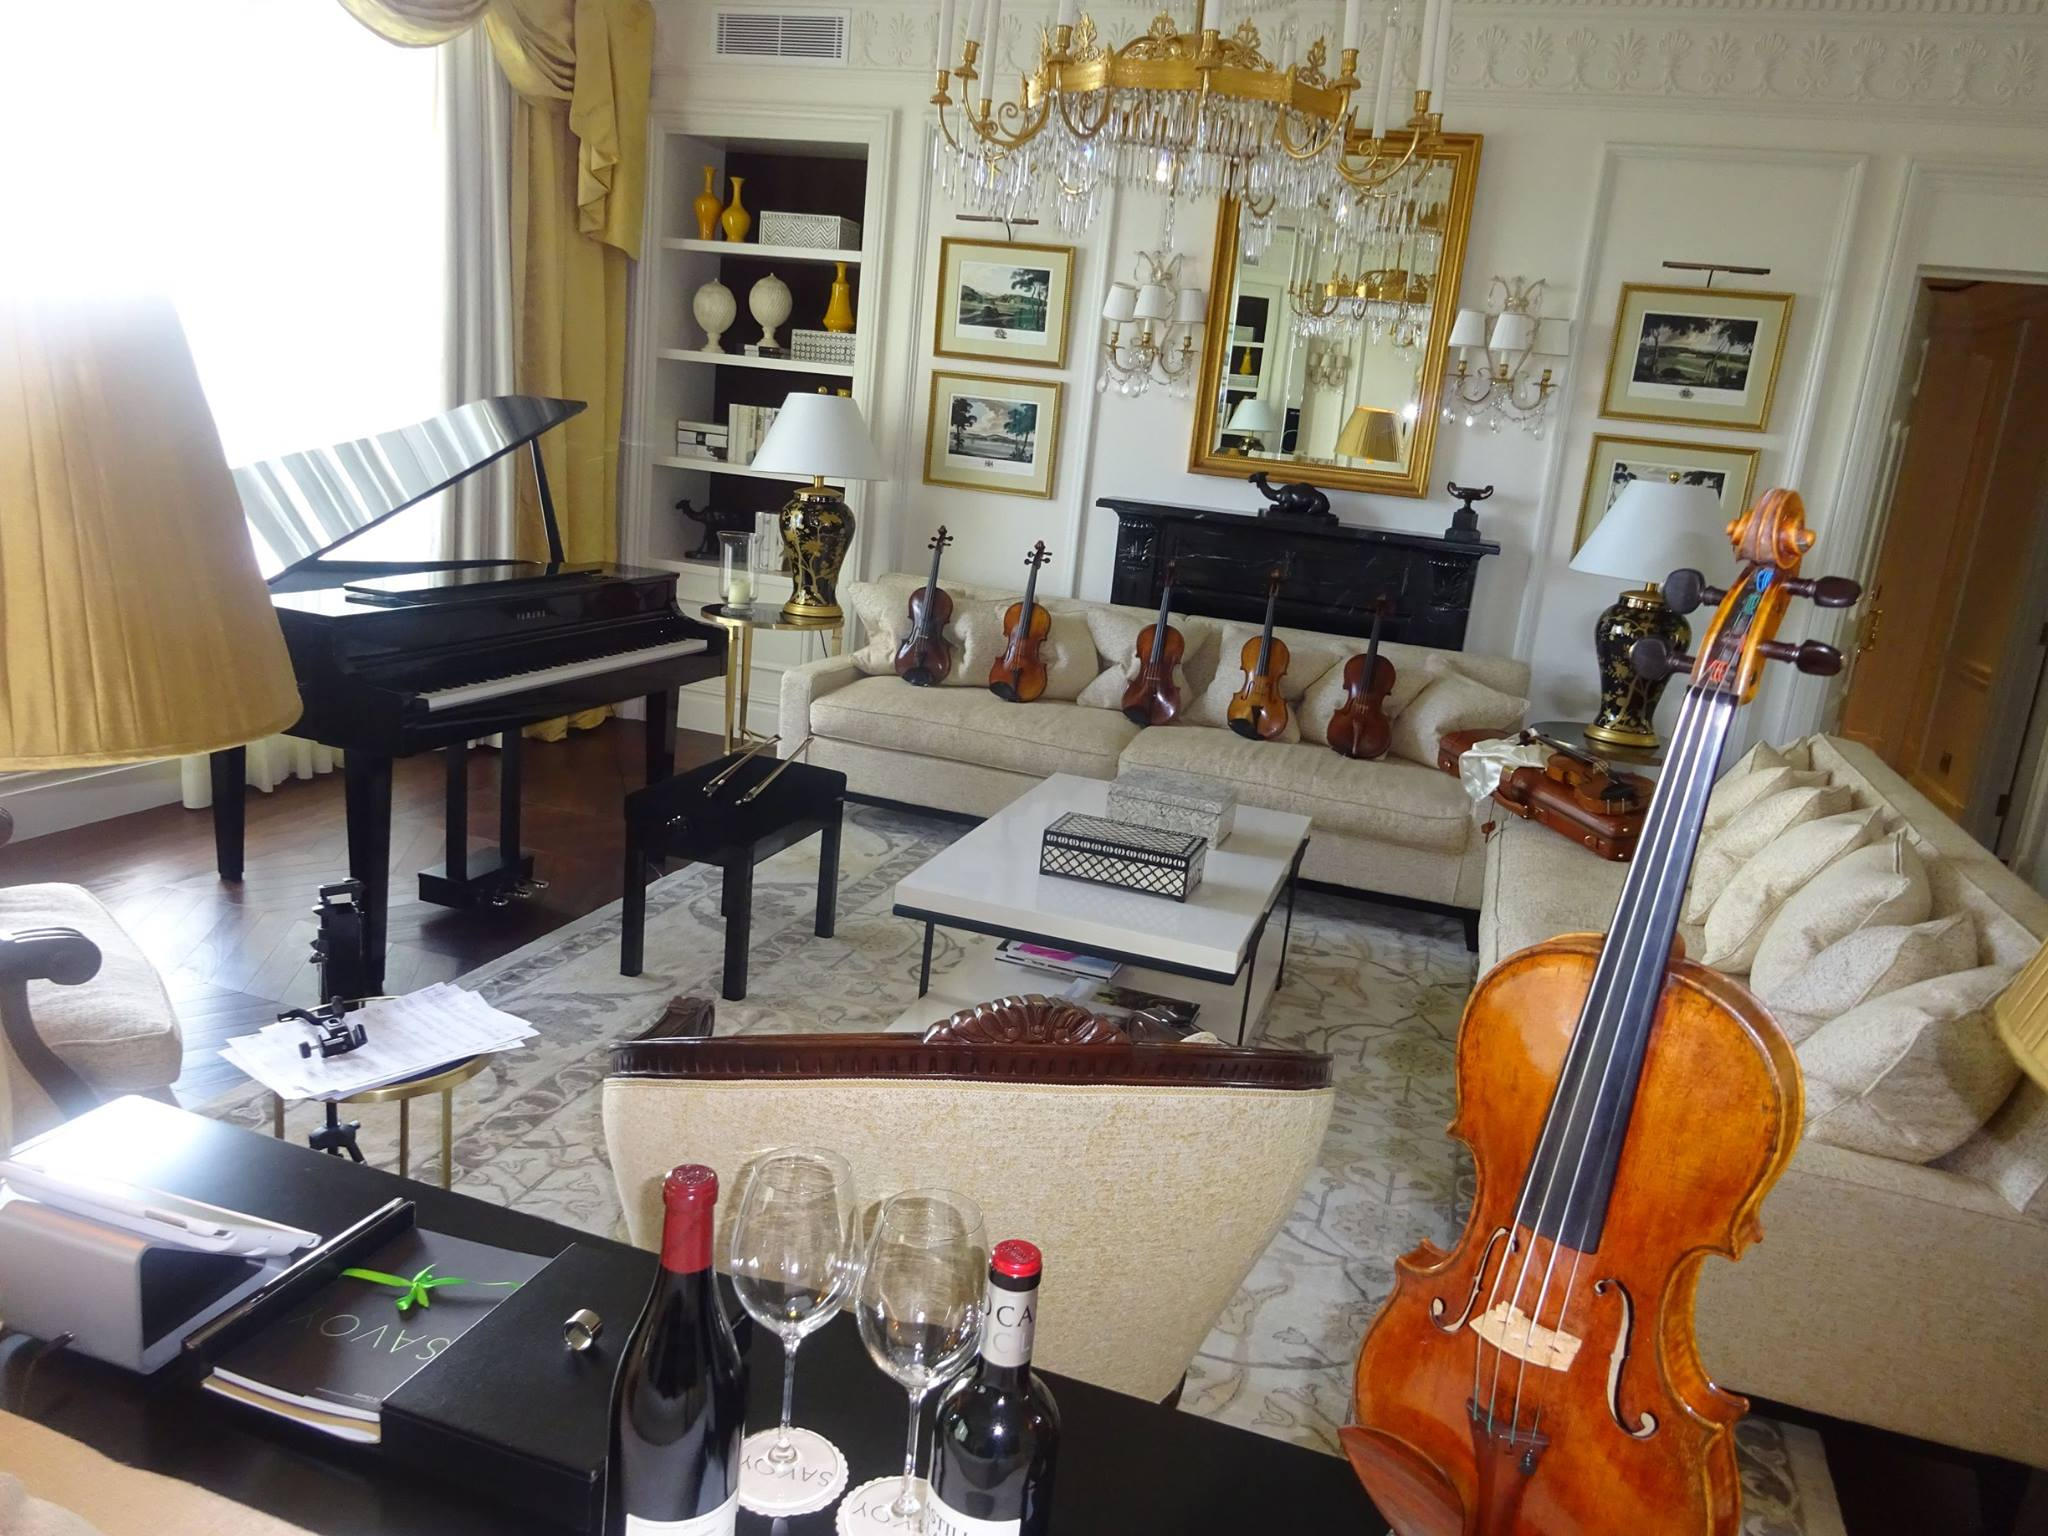 Martin Swan Violins at the Savoy Hotel, London